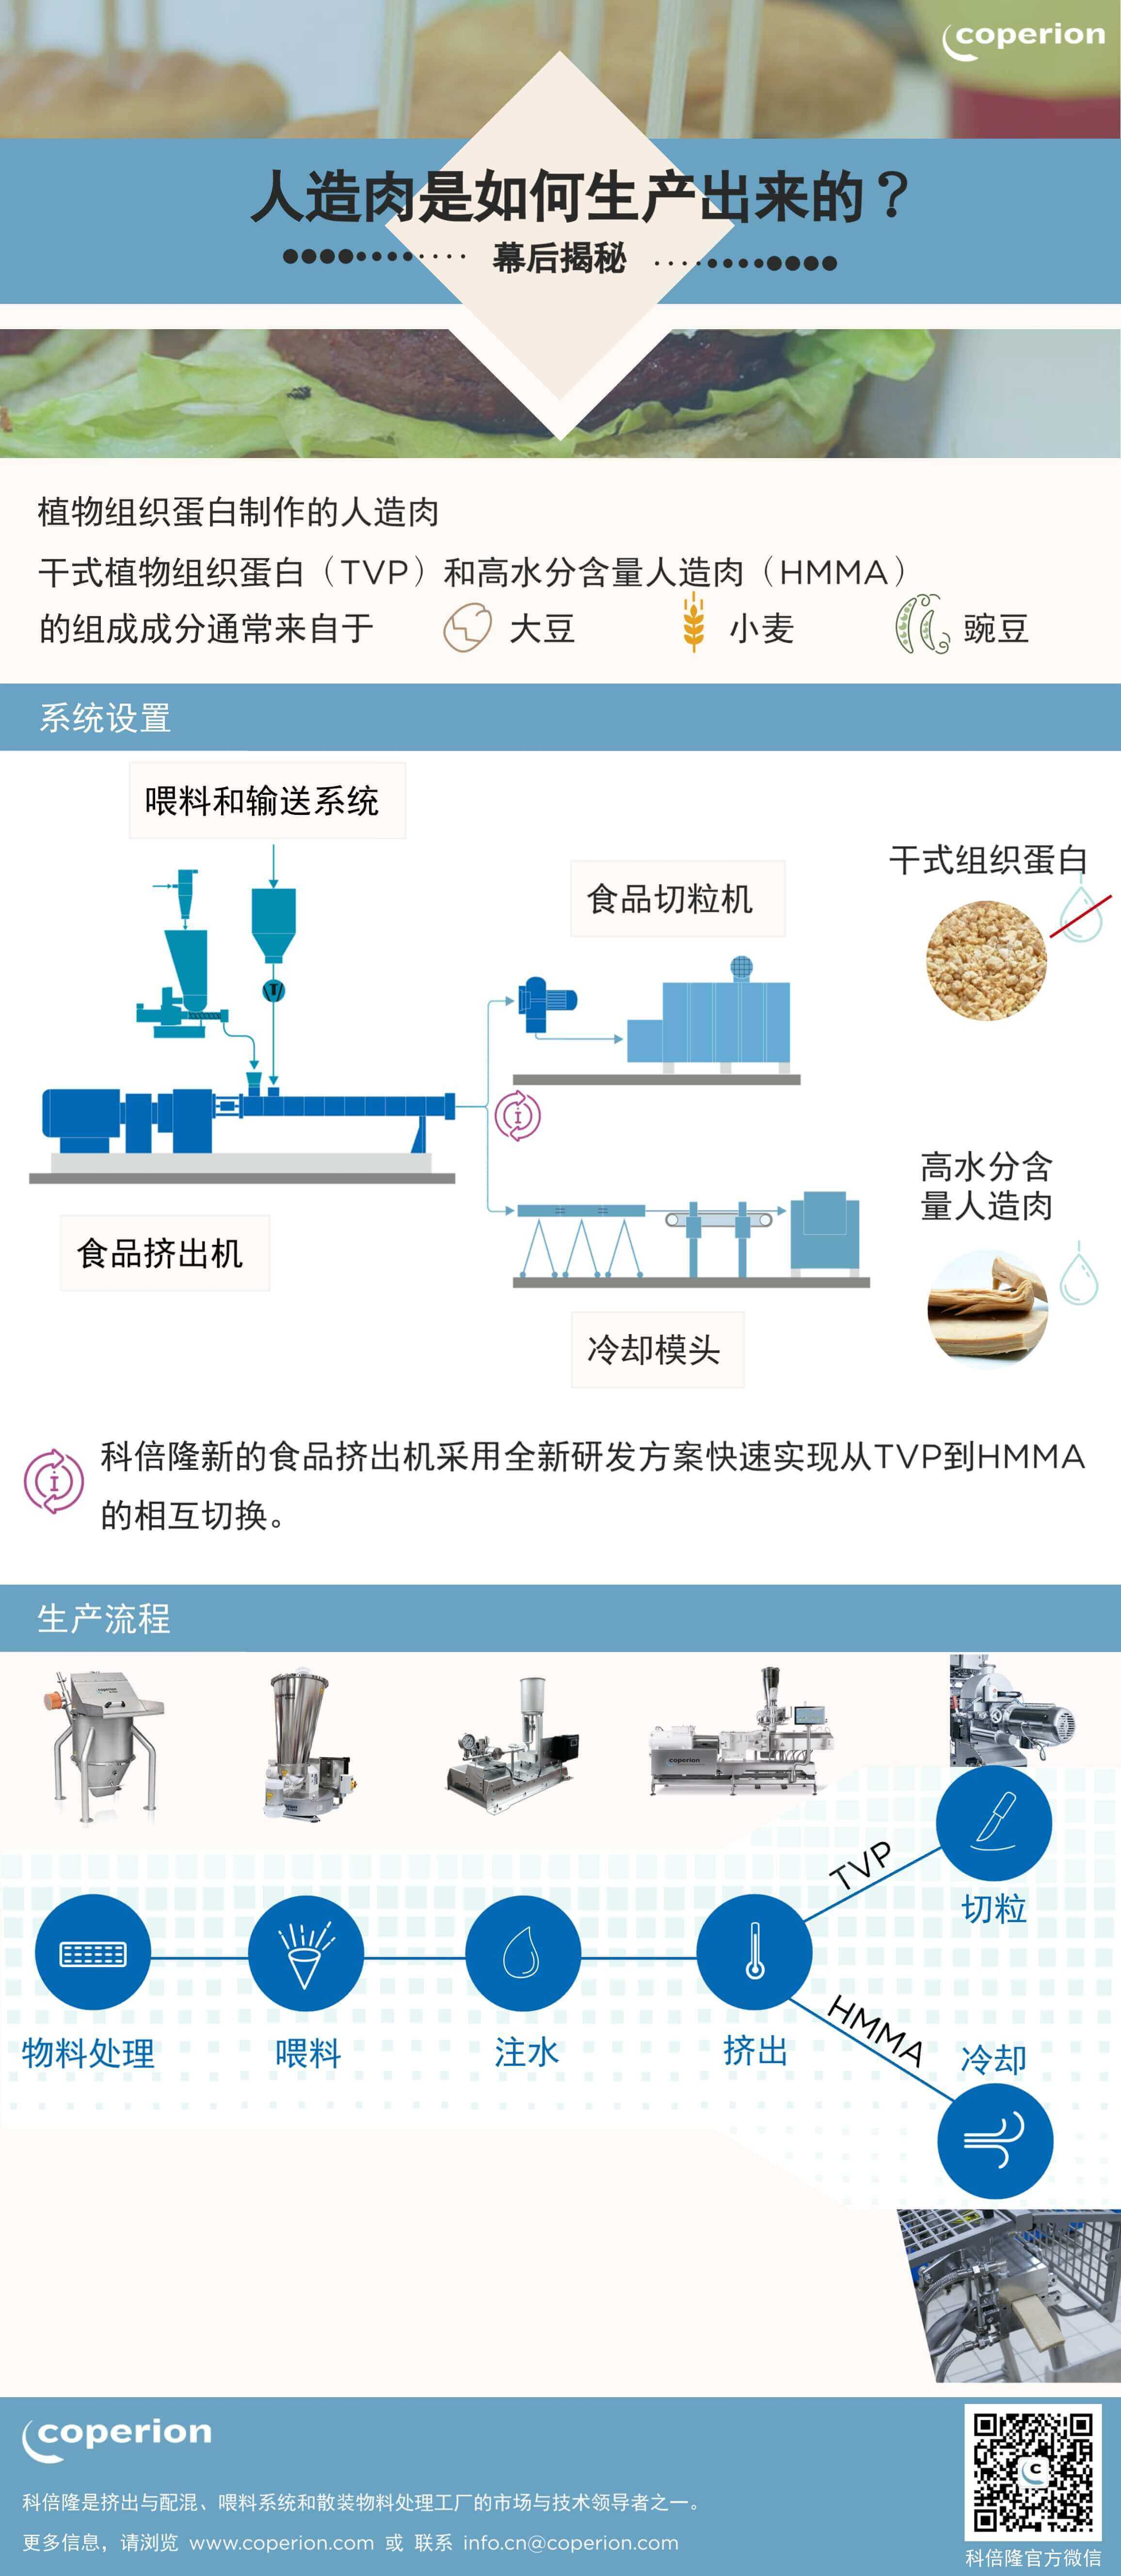 Coperion production of TVP and HMMA Infographic